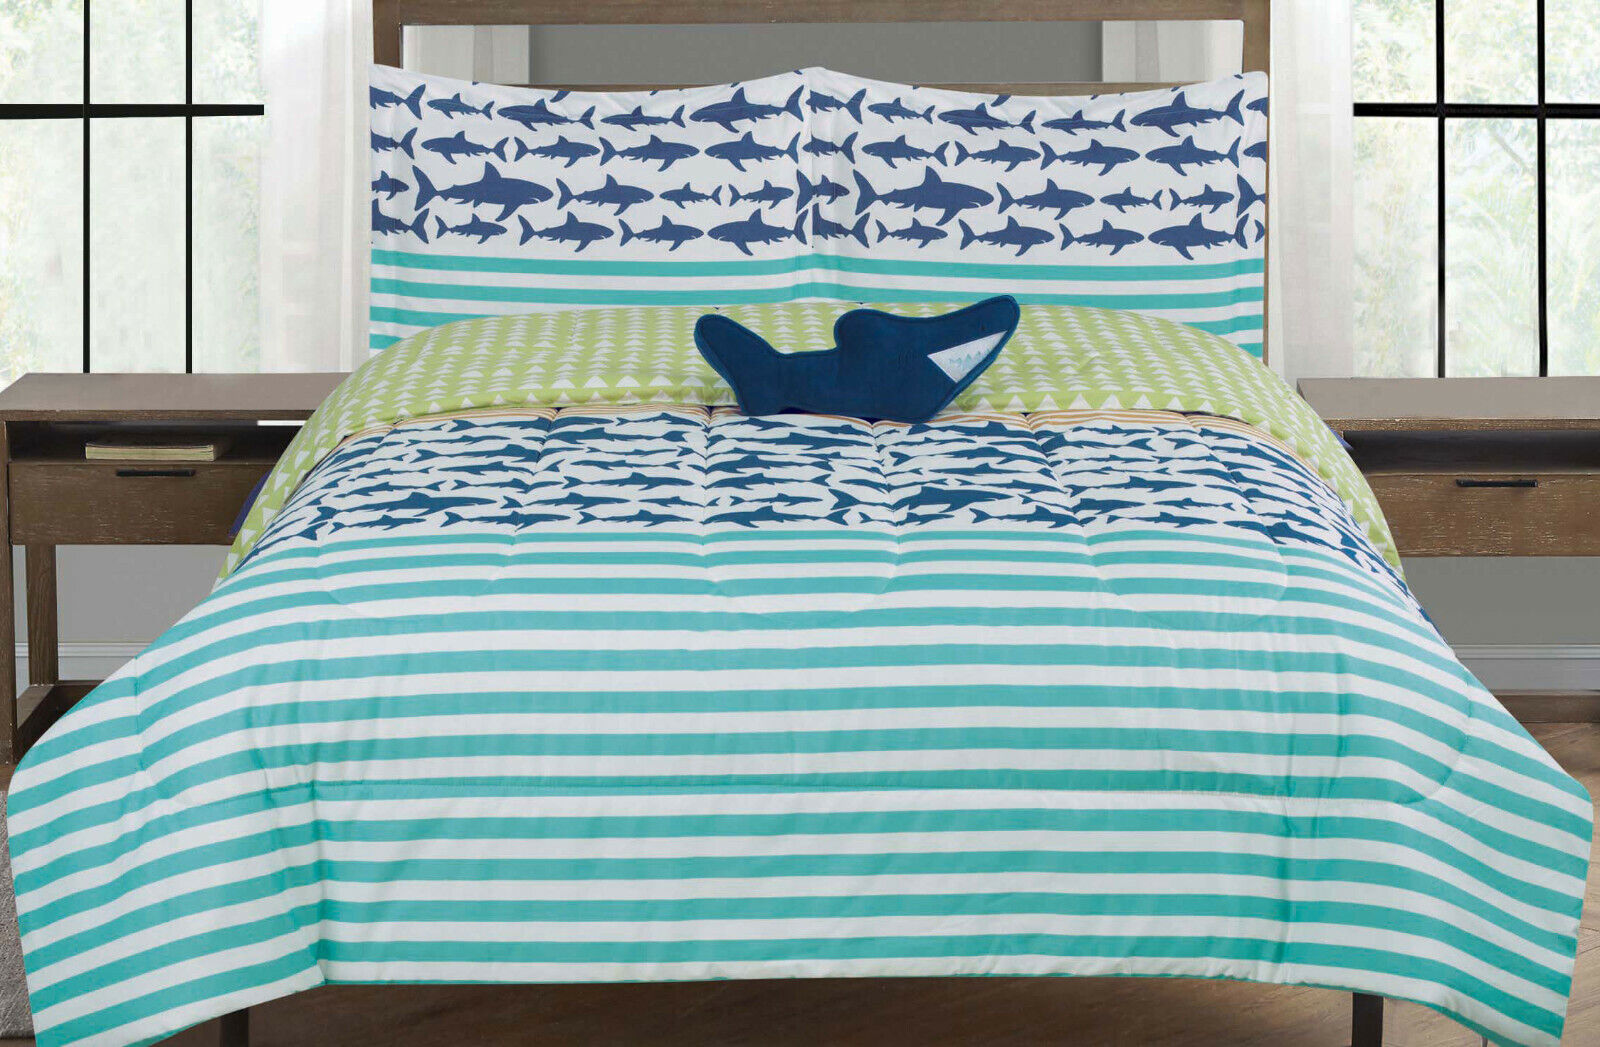 Shark Twin or Full Size Comforter Bedding Set Kid Stripes, Blue White and Green Bedding